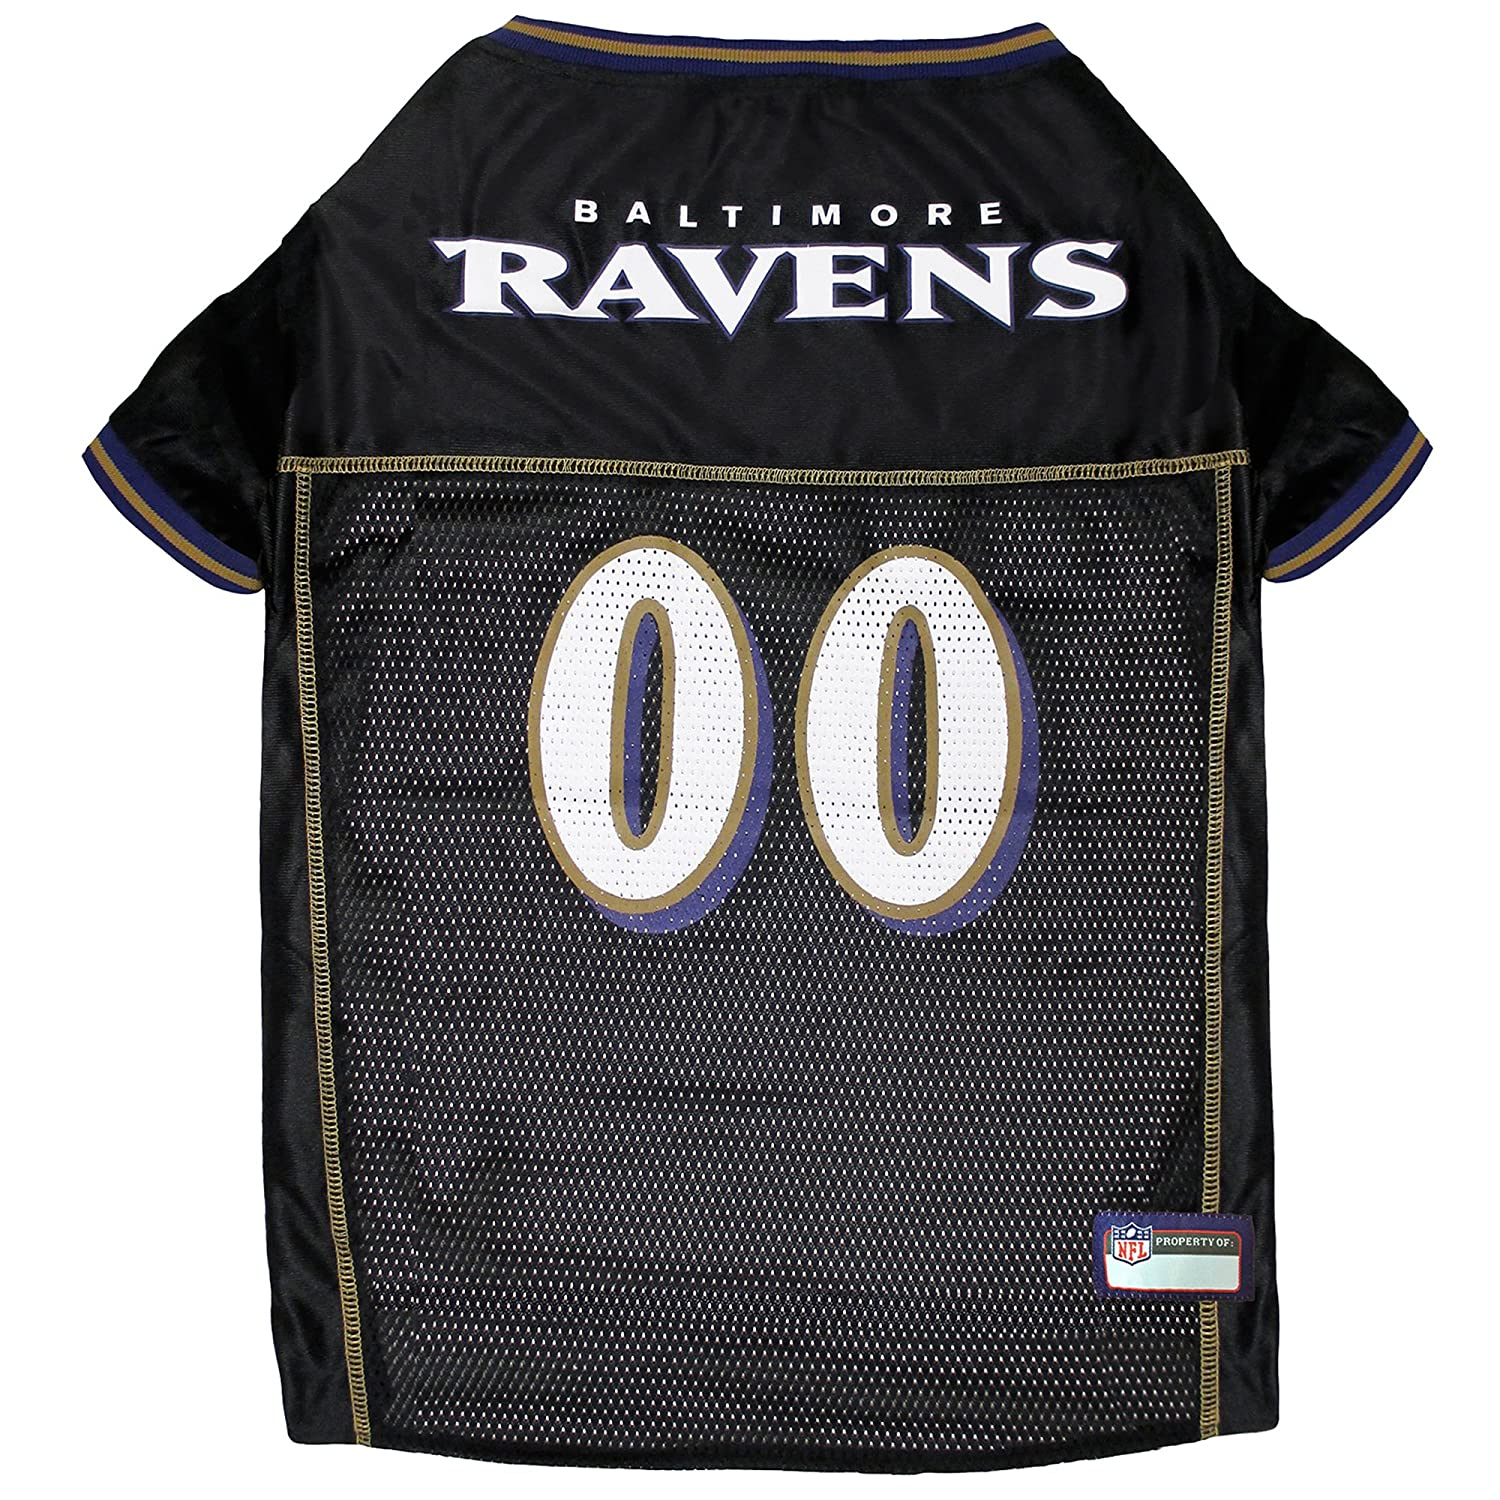 huge selection of 1f083 4ad7e NFL PET Jersey. Most Comfortable Football Licensed Dog Jersey. 32 NFL Teams  Available in 7 Sizes. Football Jersey for Dogs, Cats & Animals. - Sports ...